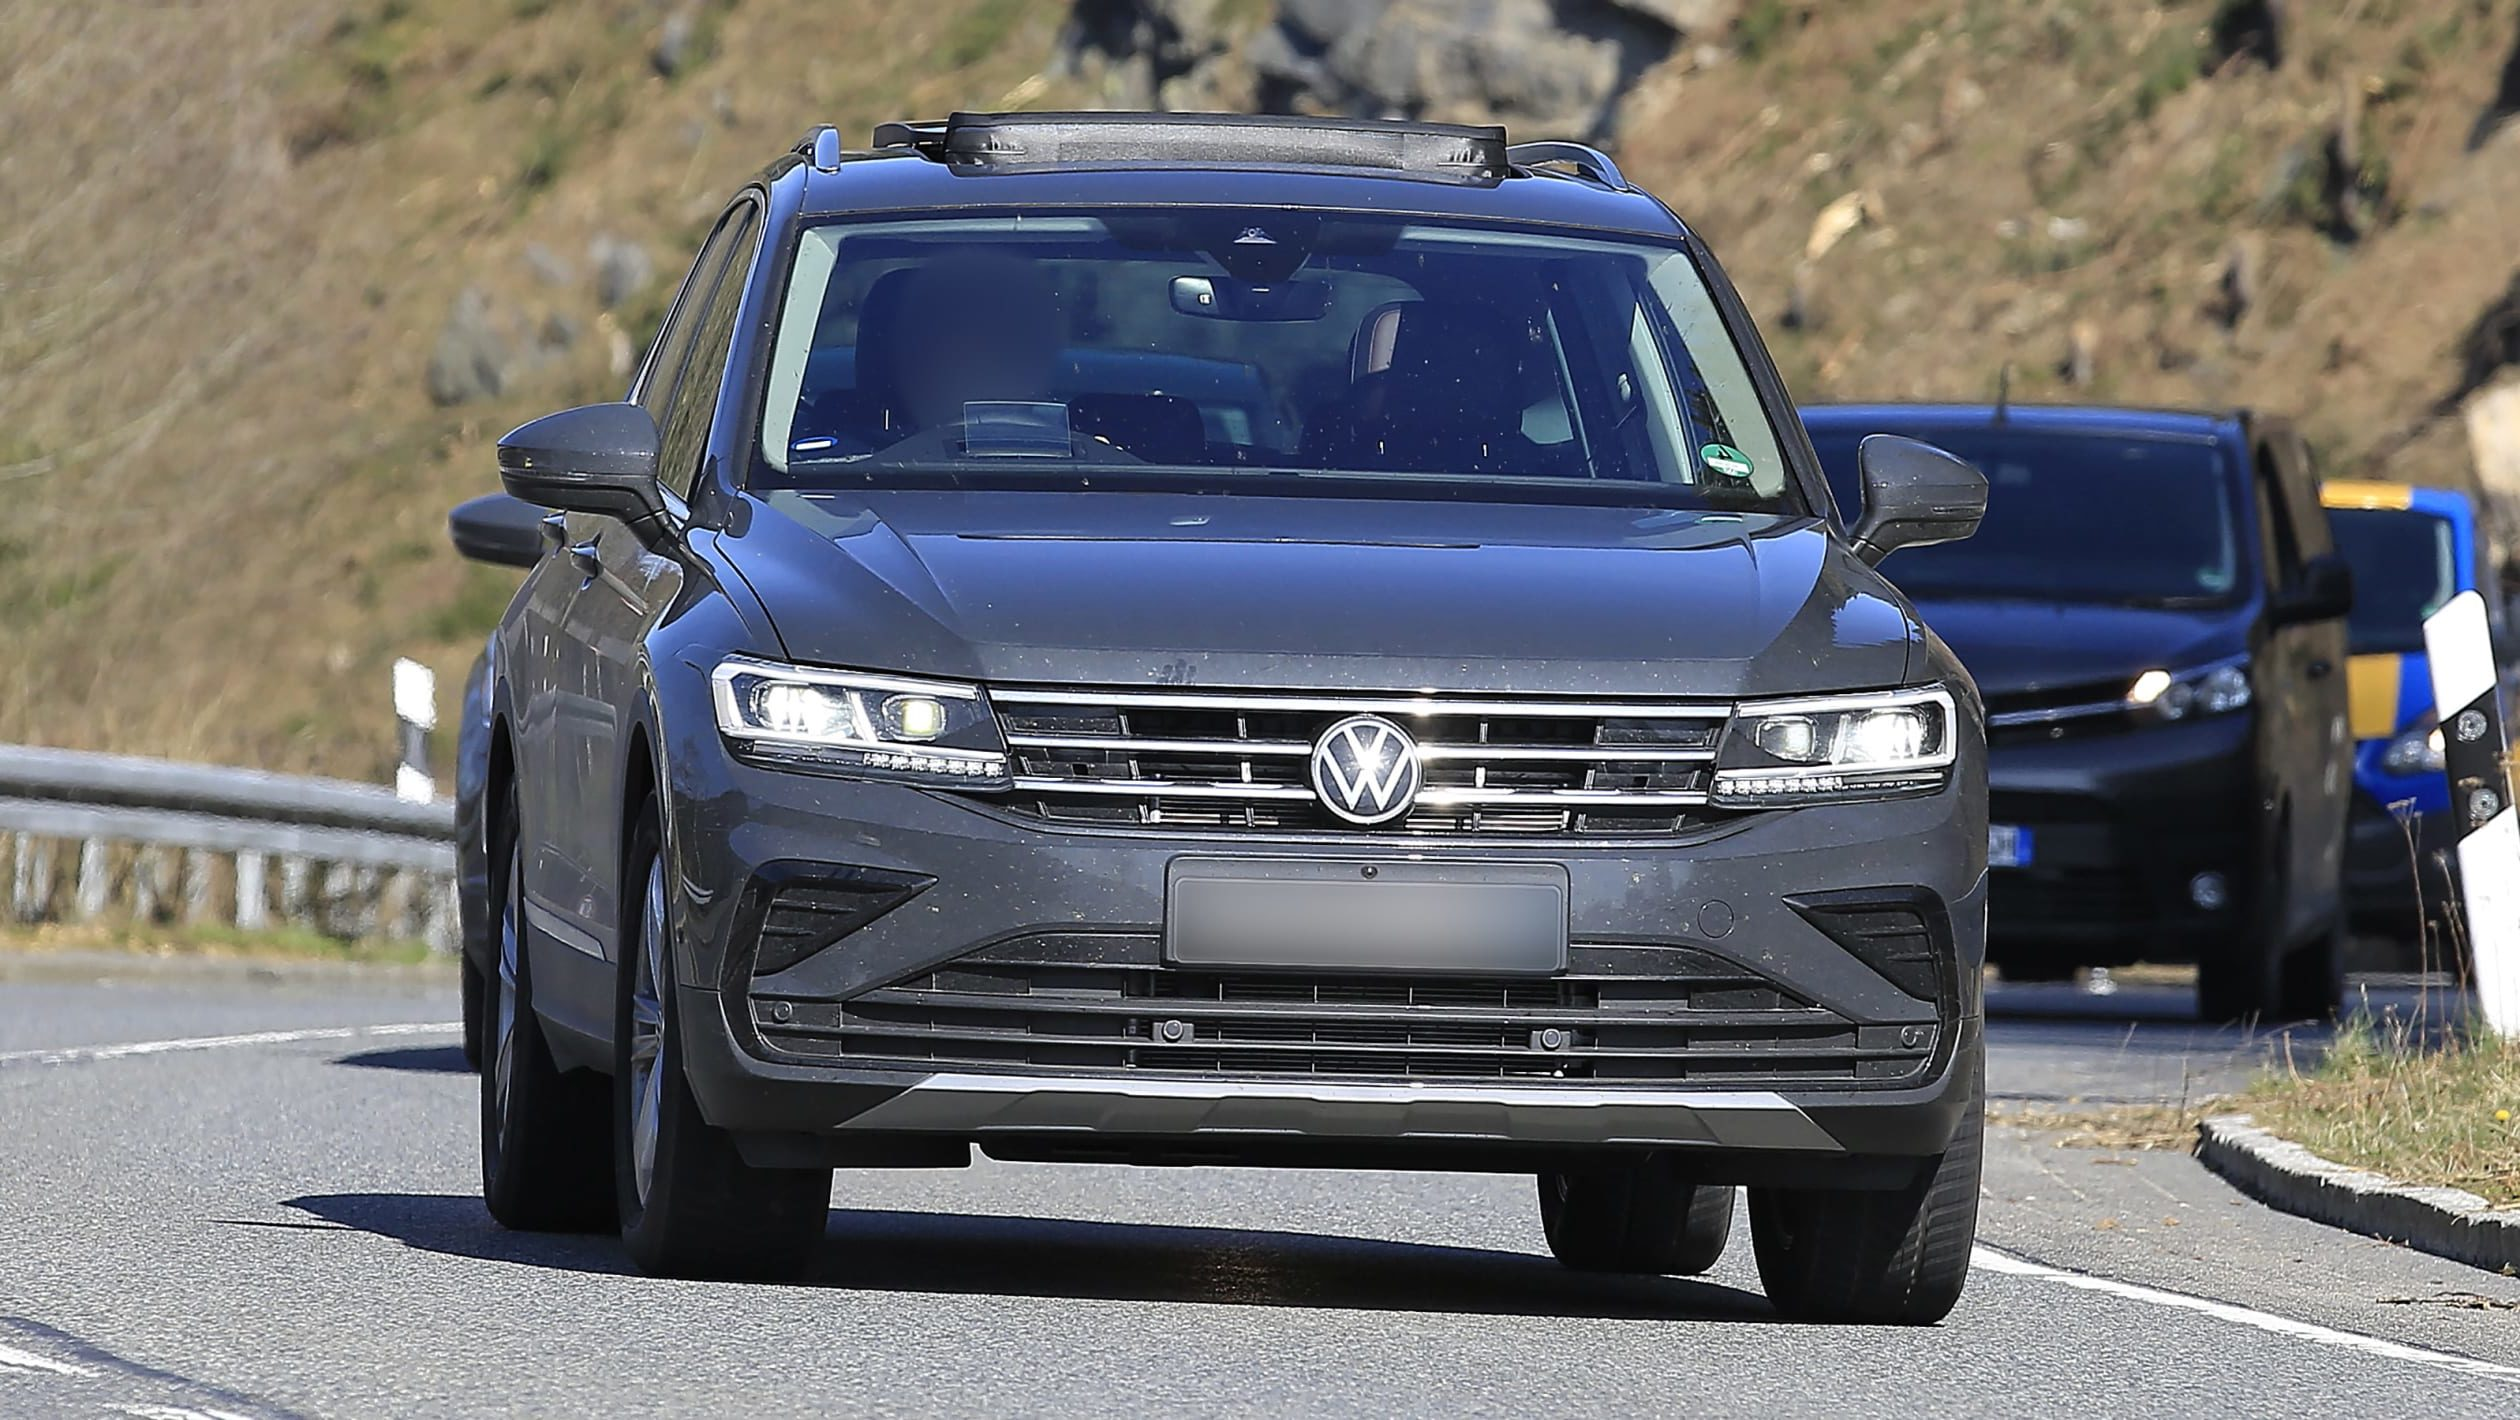 2021 VW Tiguan Concept and Review